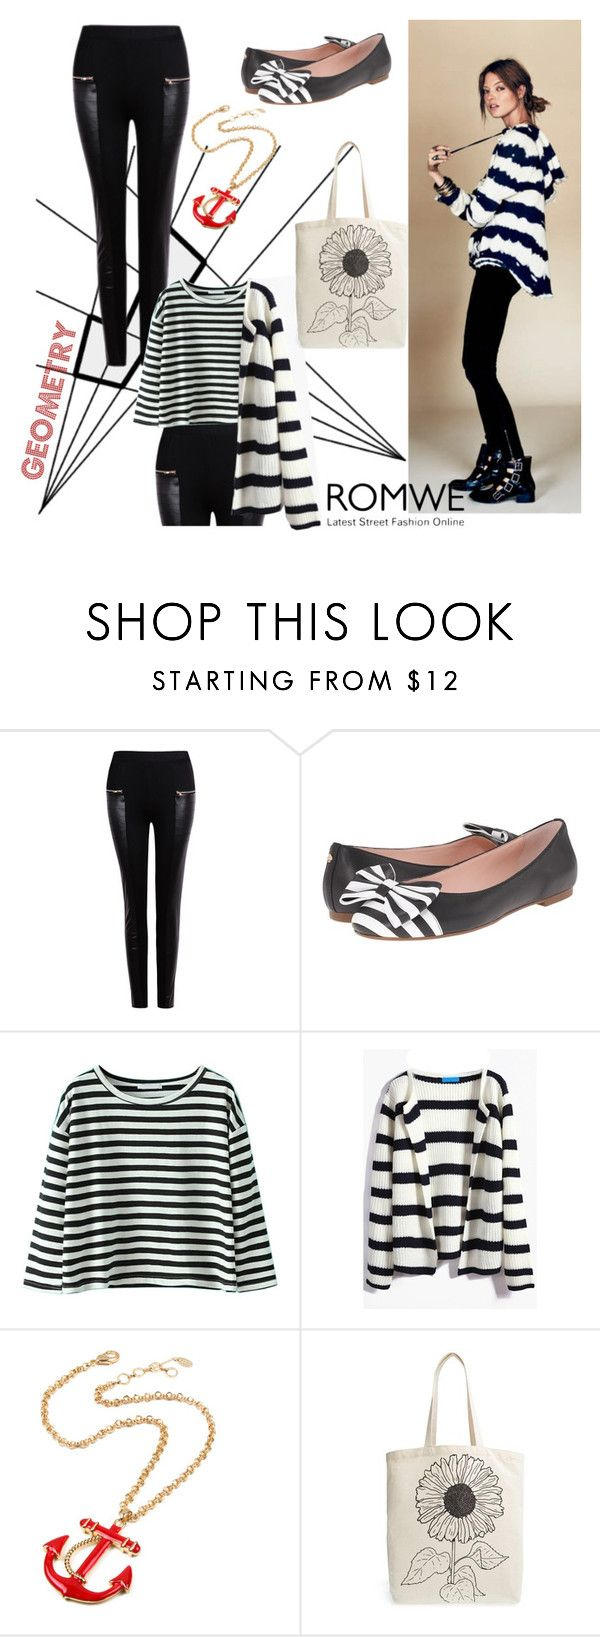 """""""Geometry Rules"""" by geekyfashionblog ❤ liked on Polyvore featuring Free People, Kate Spade, Amrita Singh, Tri-coastal Design, women's clothing, women, female, woman, misses and juniors"""